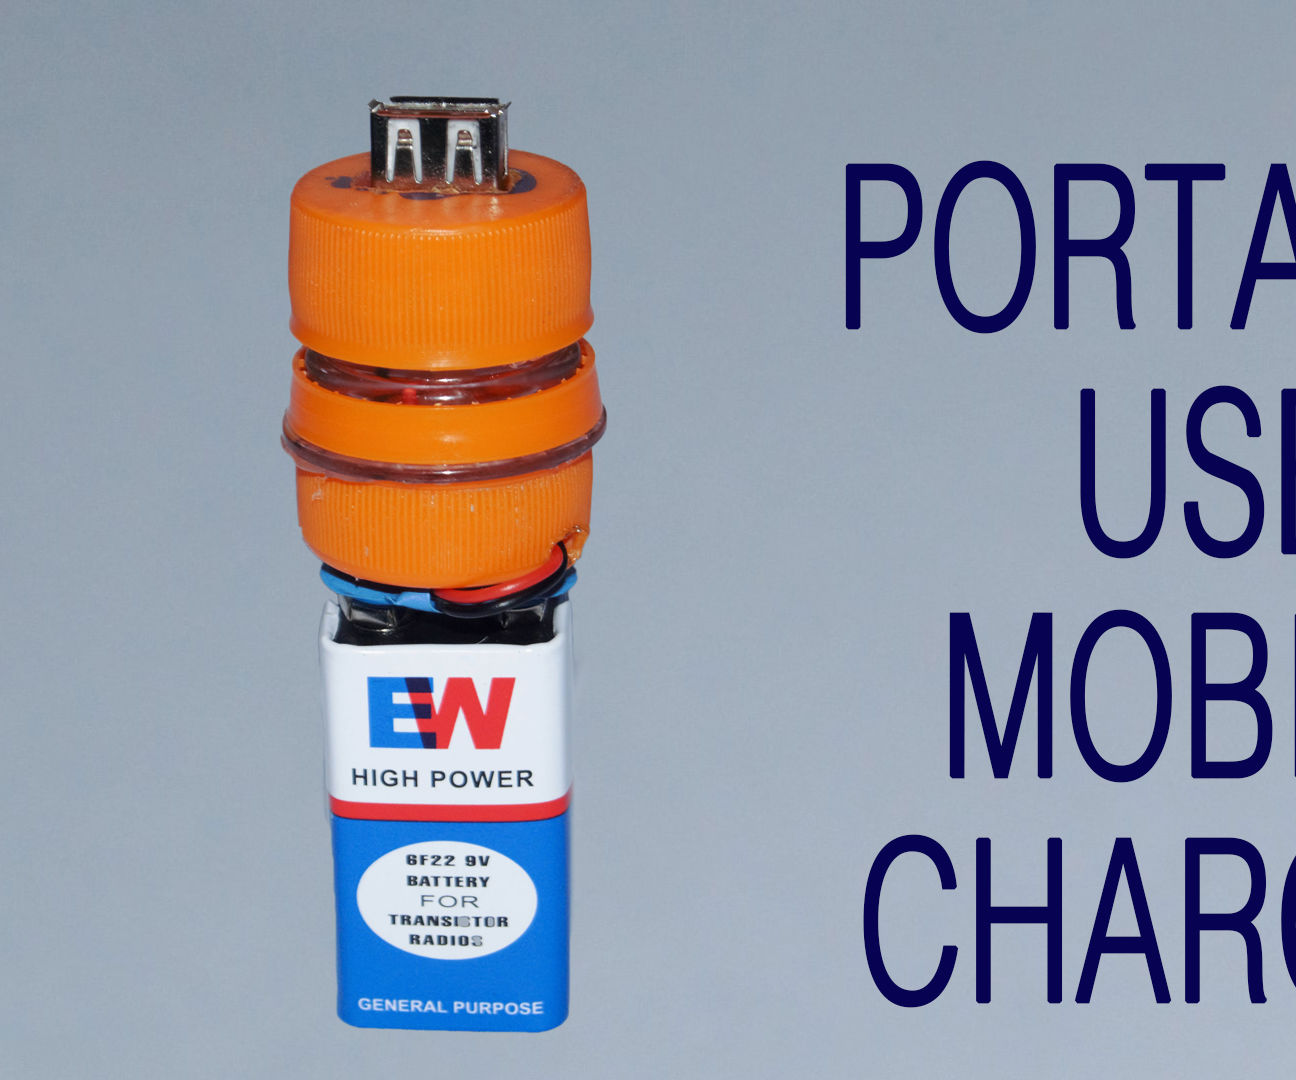 How to Make USB Mobile Charger Using 9V Battery